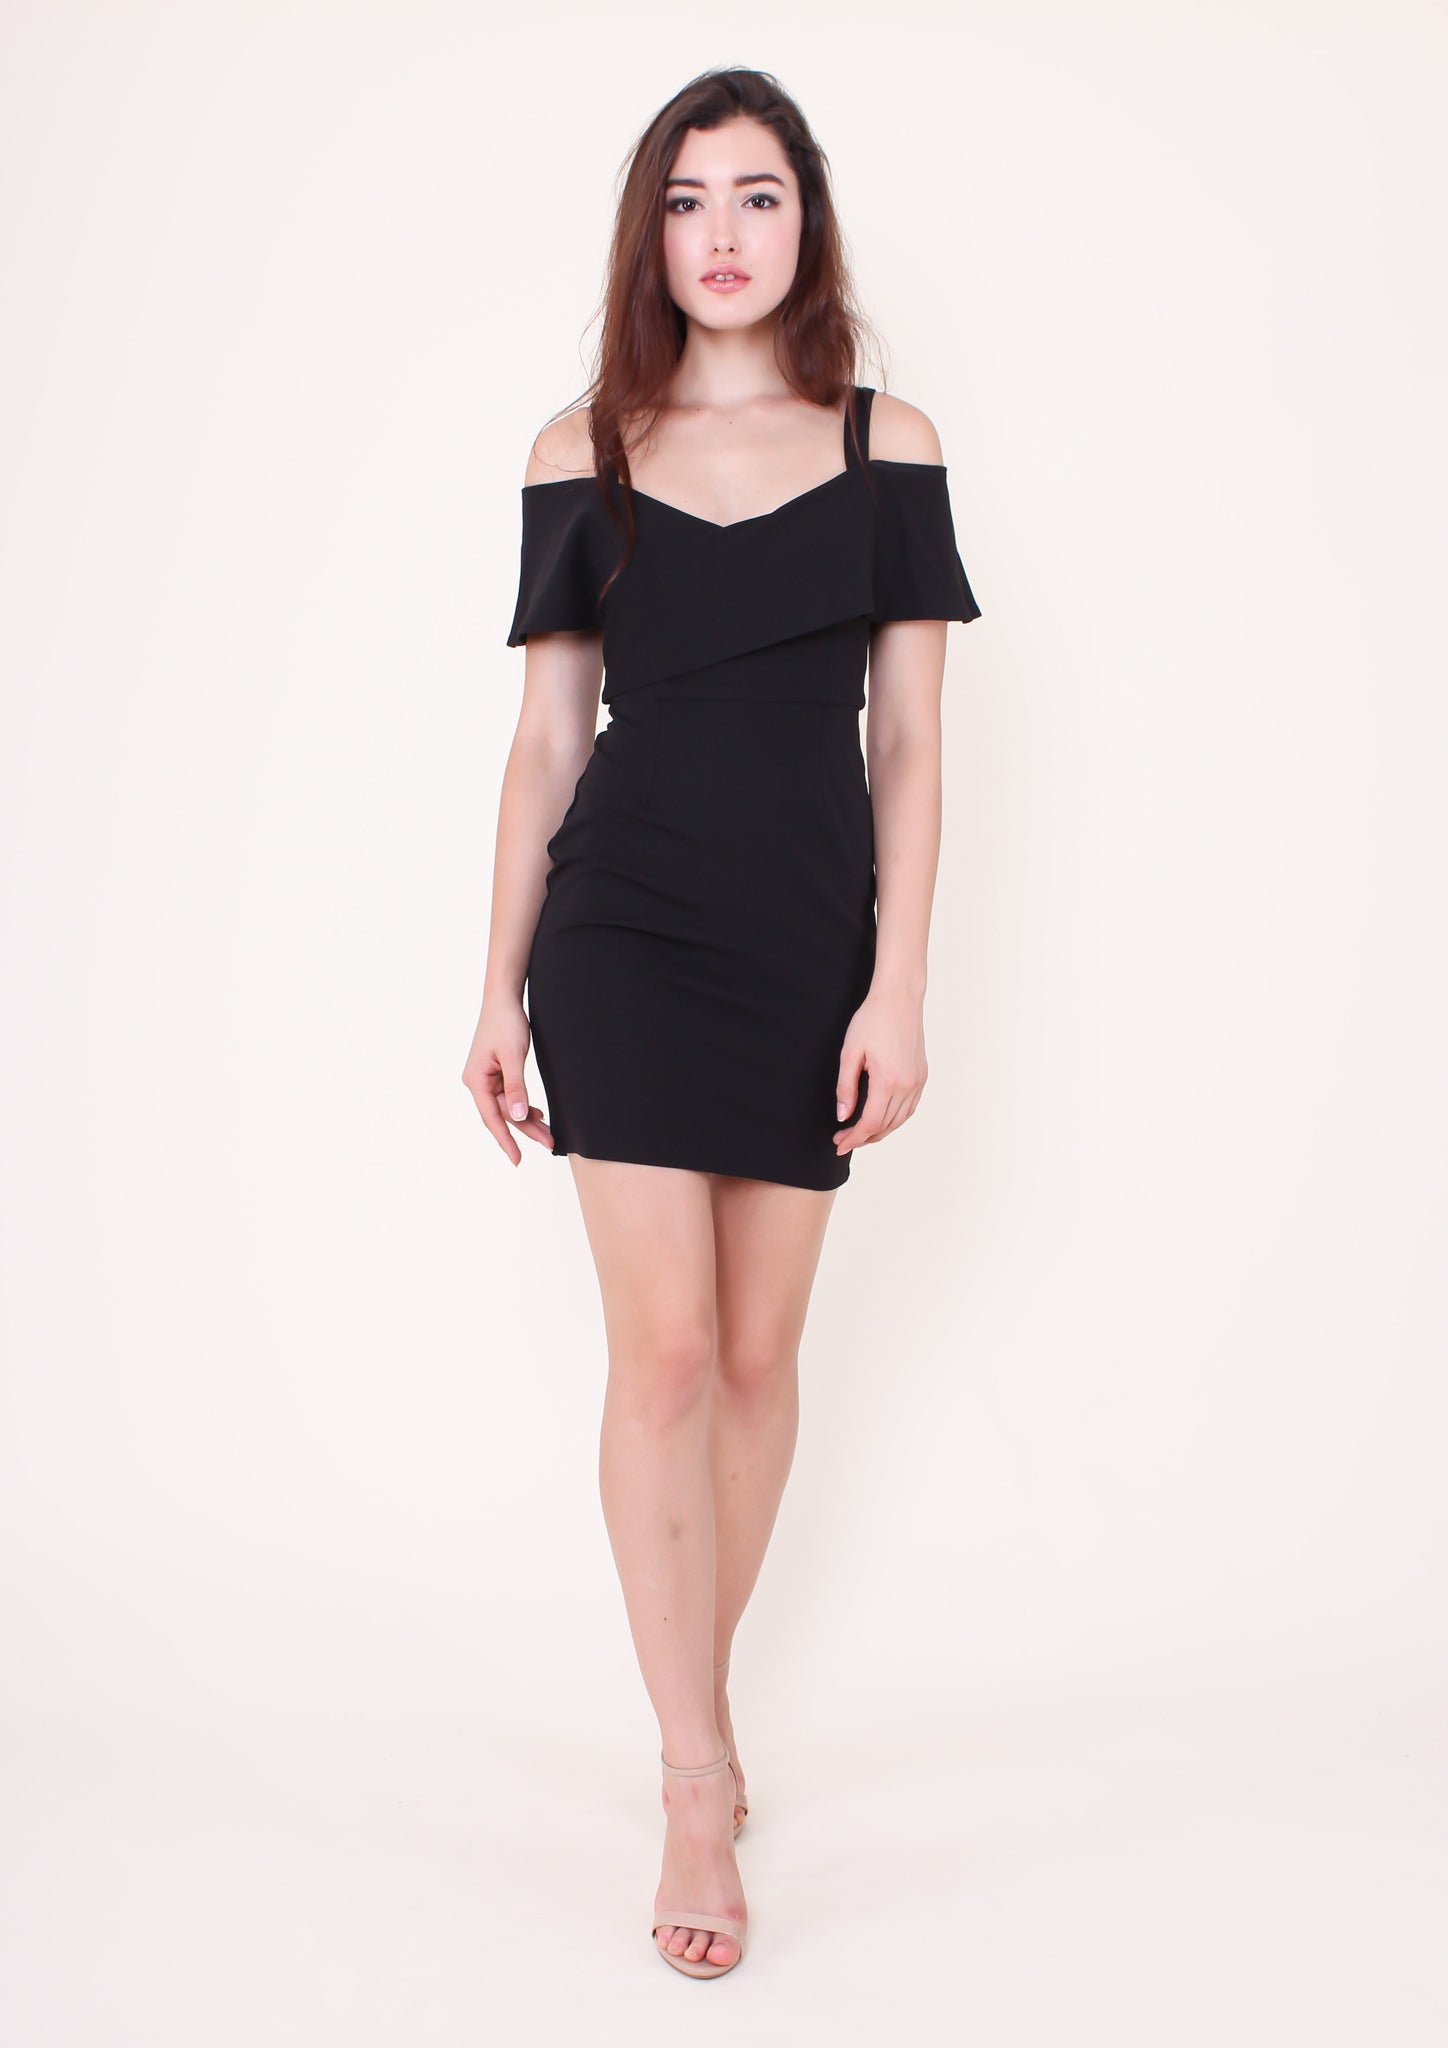 Suspended Dress (Black) - Moxie